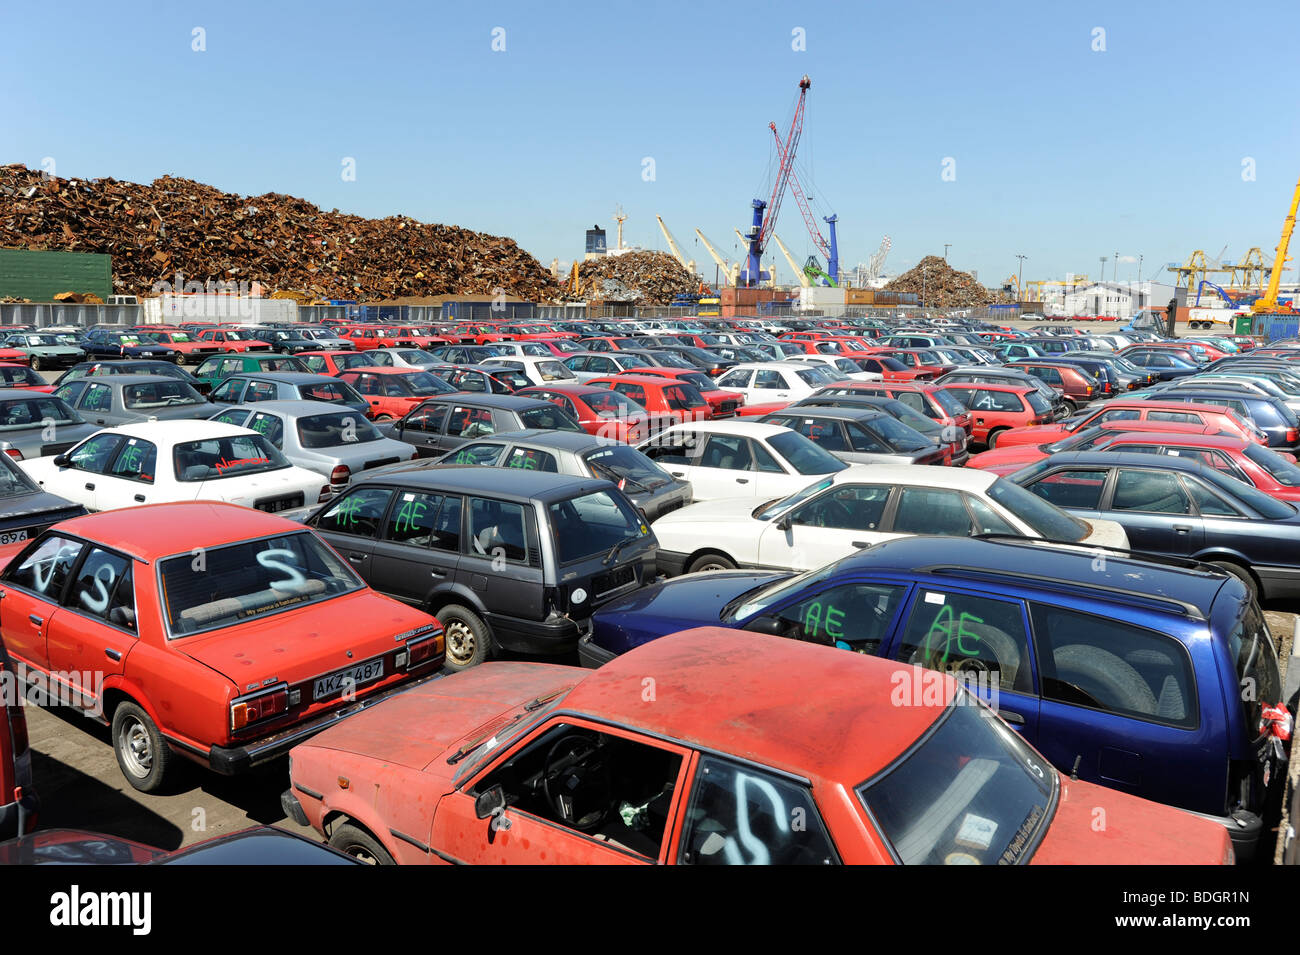 germany hamburg used old cars await export to africa cotonou benin stock photo 25570209 alamy. Black Bedroom Furniture Sets. Home Design Ideas